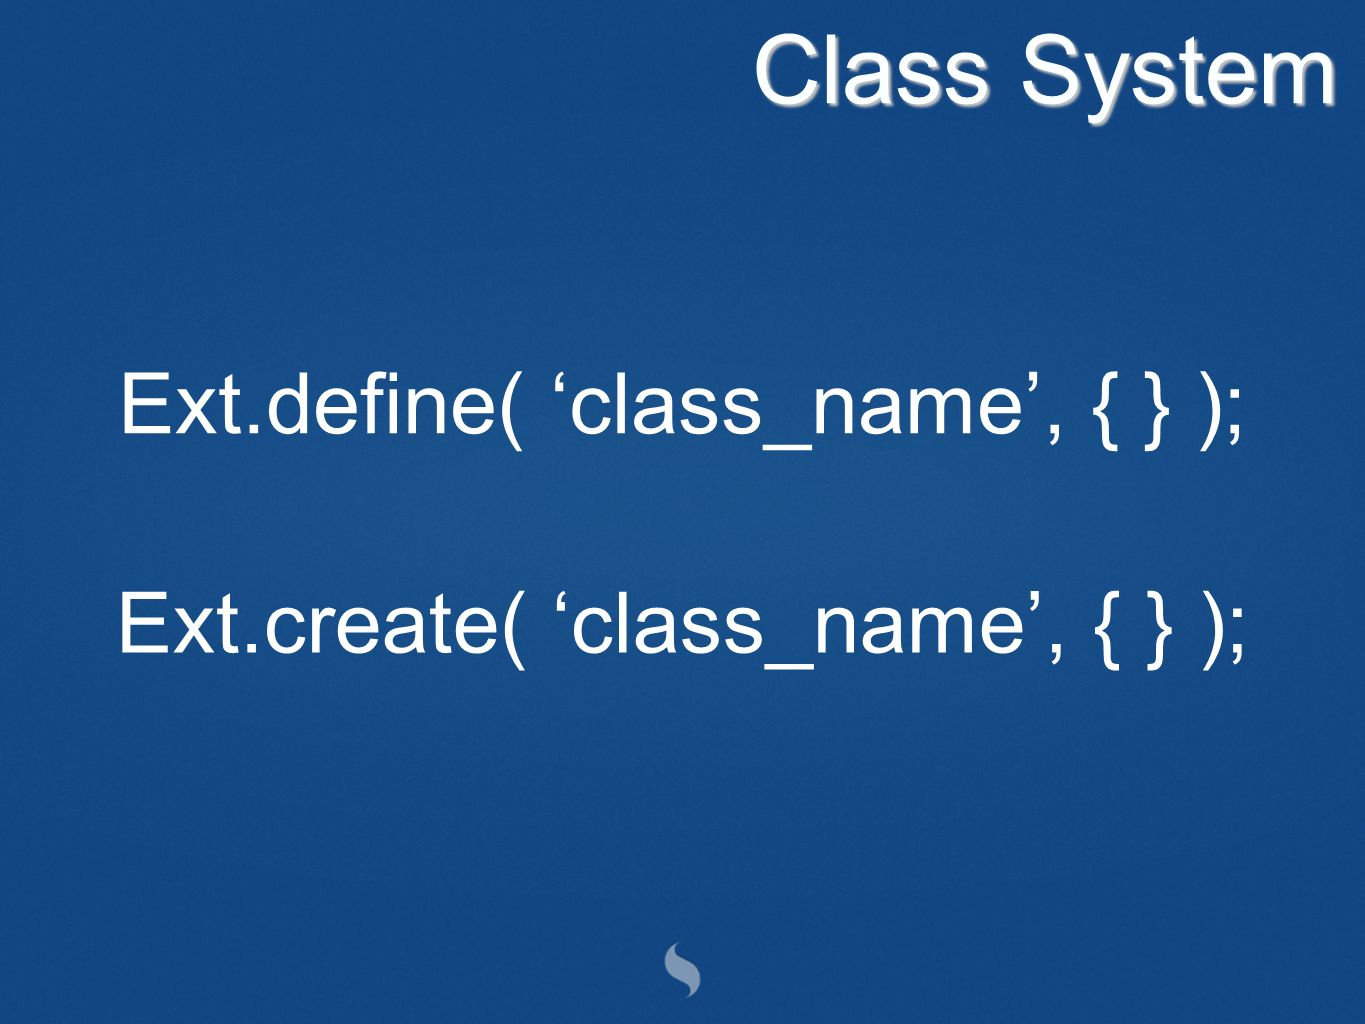 Ext.create( class_name, { } ); Ext.define( class_name, { } ); Class System